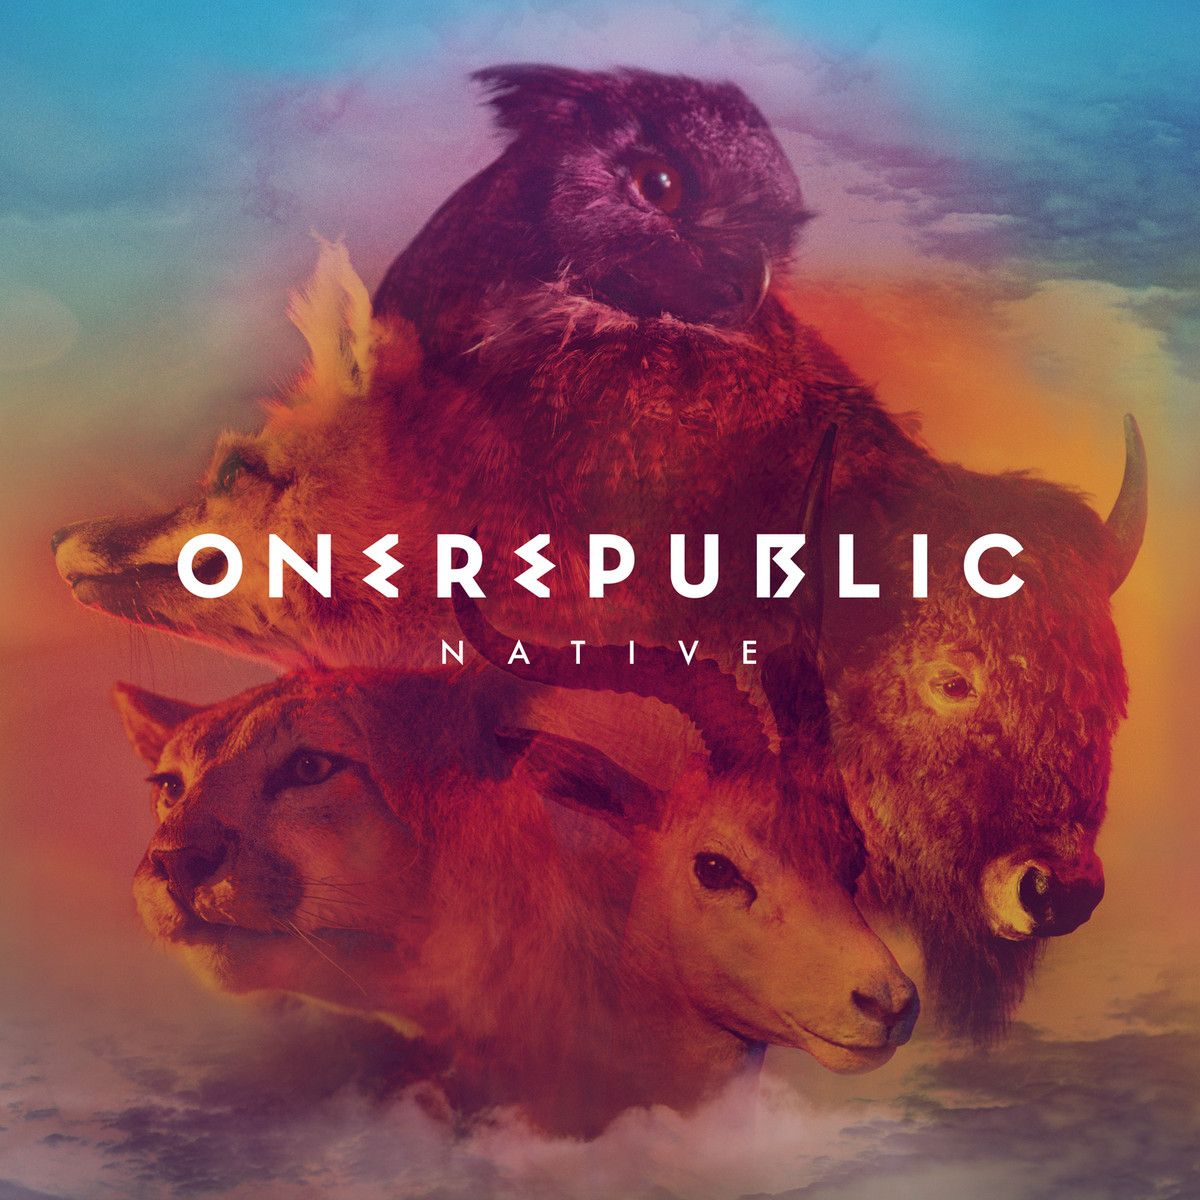 OneRepublic - Native album cover